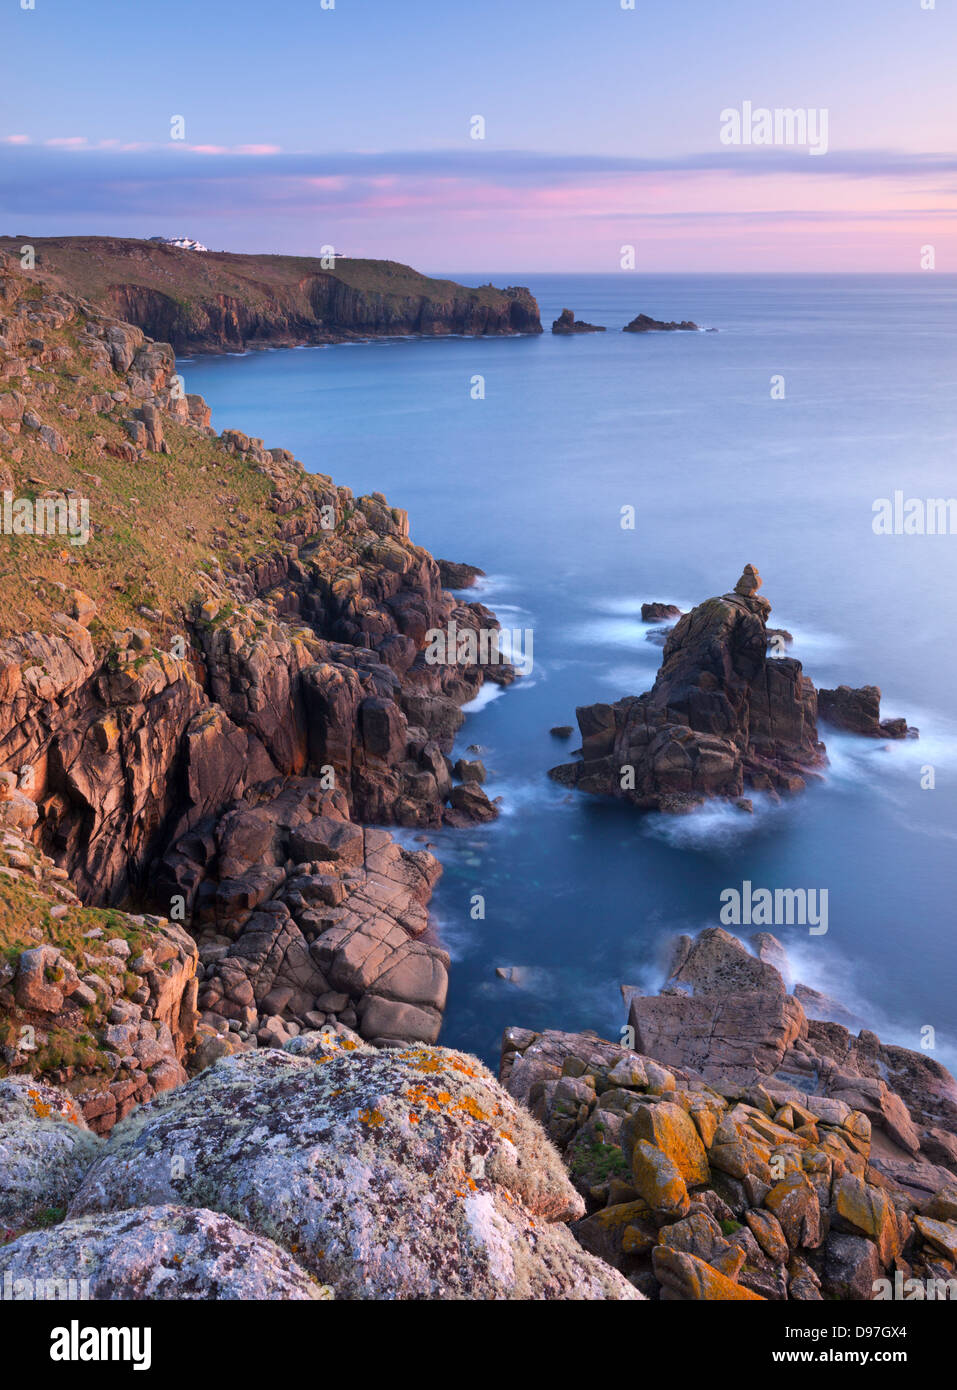 Looking towards Land's End from the cliffs above Sennen, Cornwall, England. Spring (May) 2012. - Stock Image